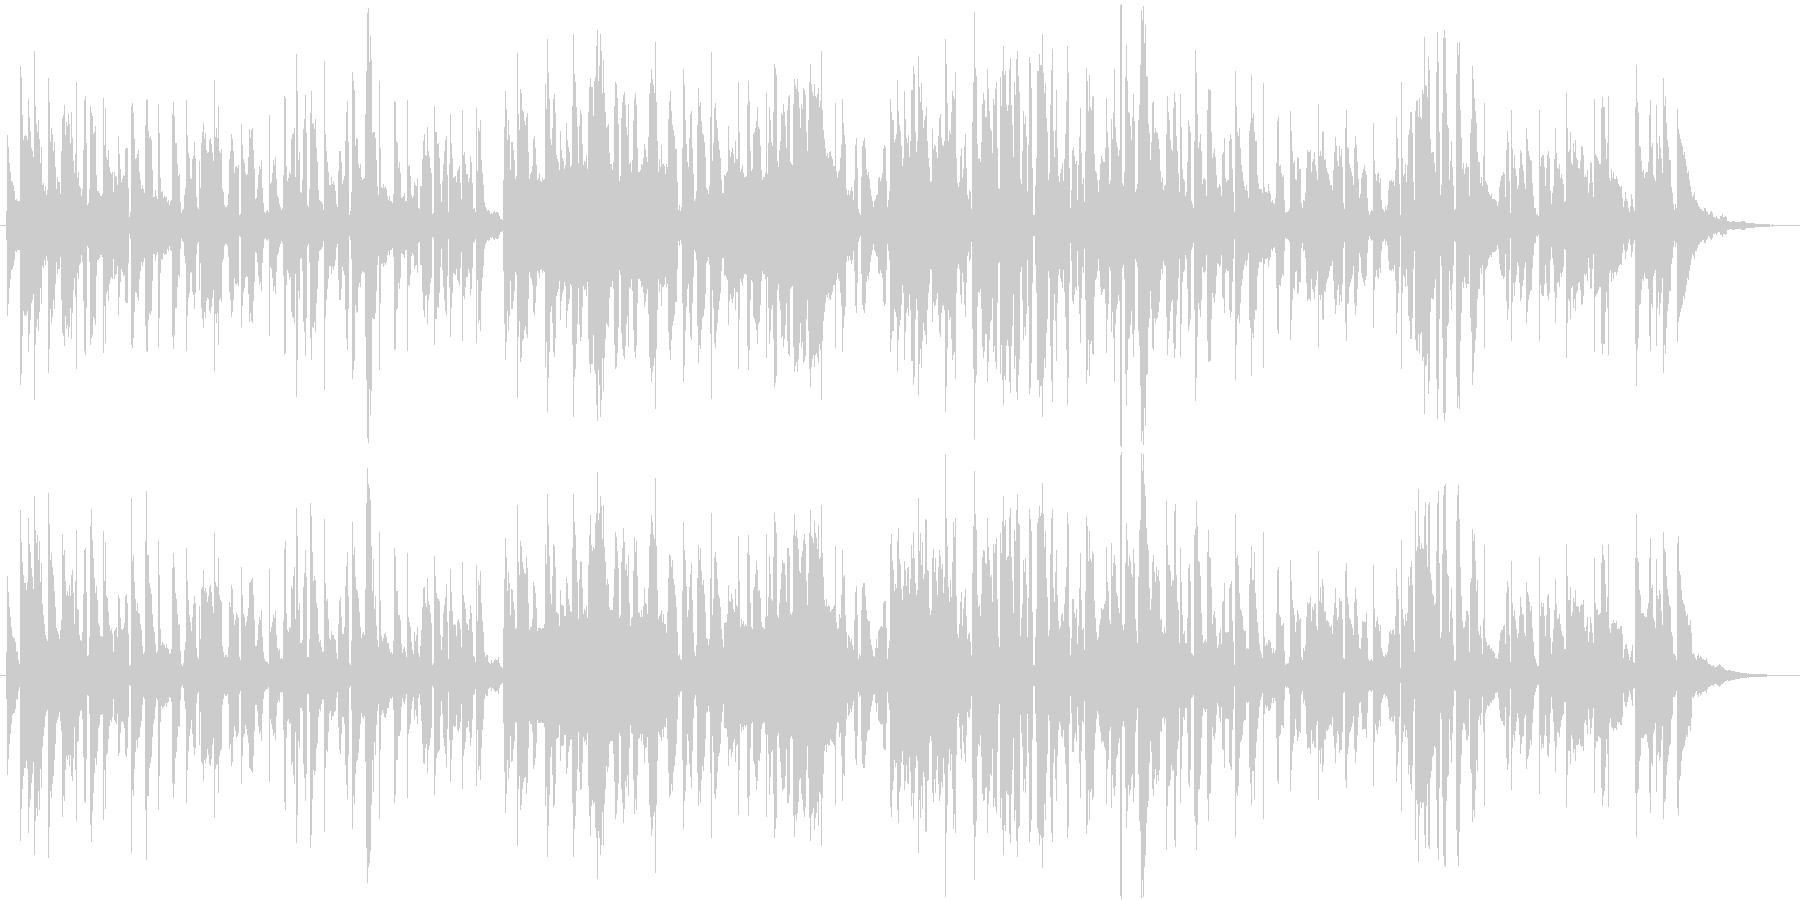 Tomato-themed songs's unreproduced waveform